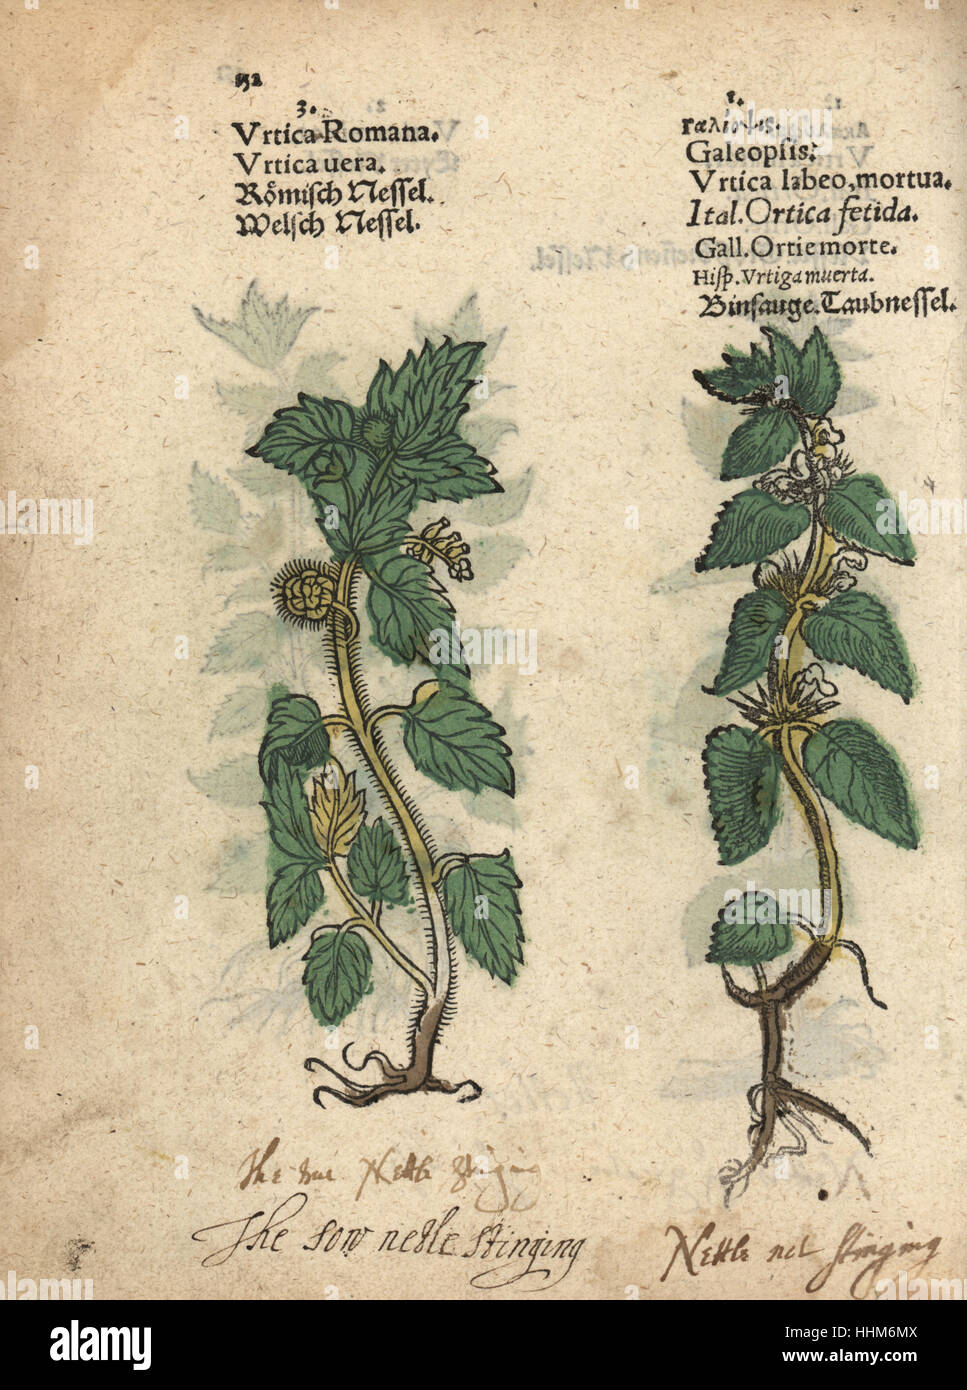 [Image: stinging-nettle-urtica-dioica-and-hemp-n...HHM6MX.jpg]